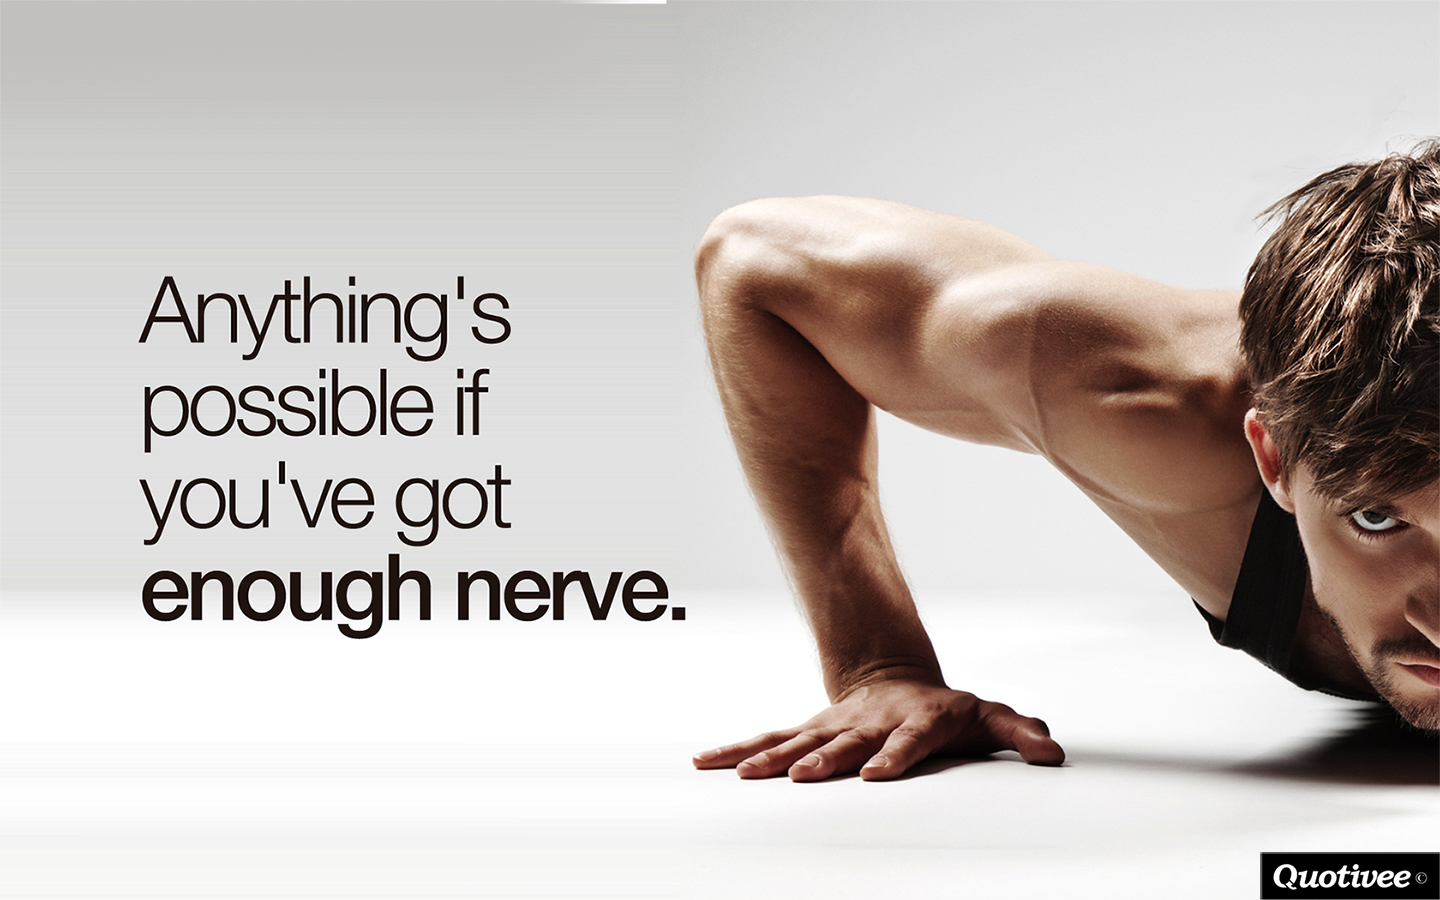 quotivee_1440x900_0002_anythings-possible-if-youve-got-enough-nerve